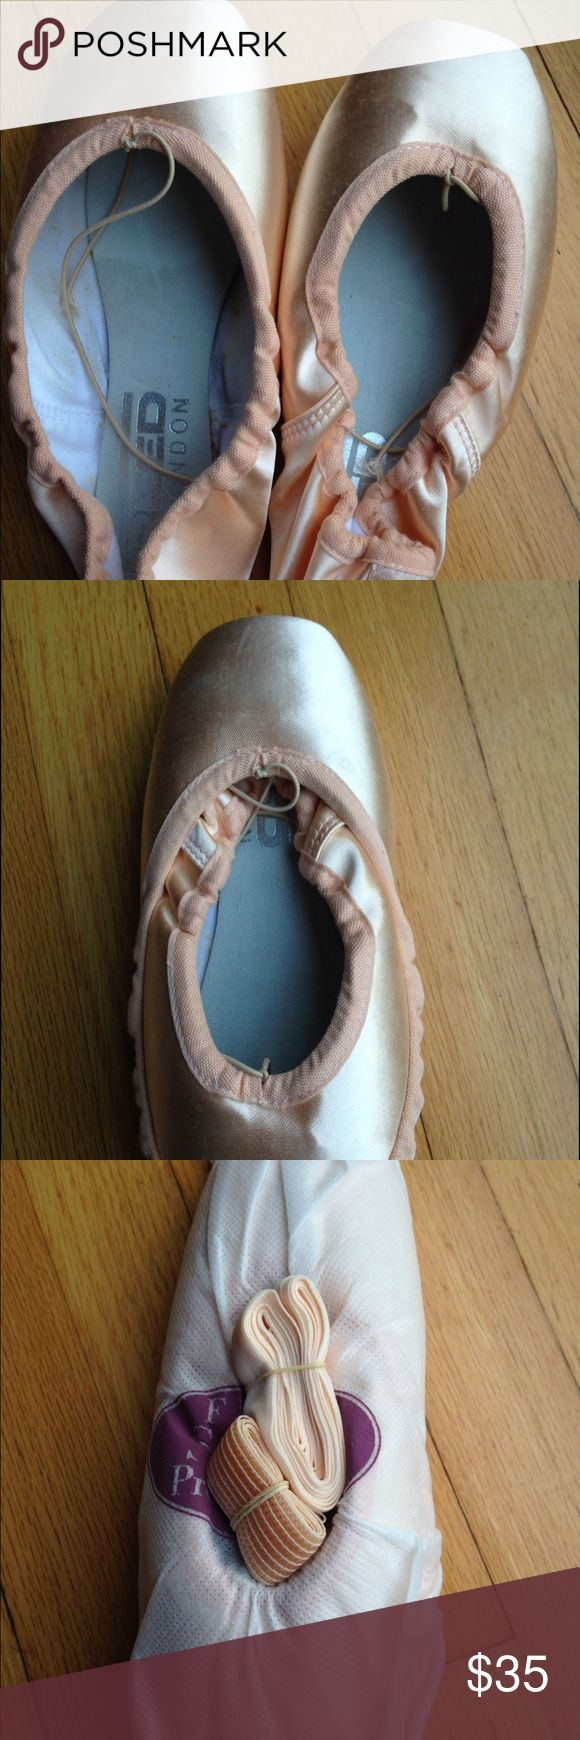 Ballet point shoes. Never worn. Purchased in London Freed store. Still in original bag. Freed Shoes Athletic Shoes